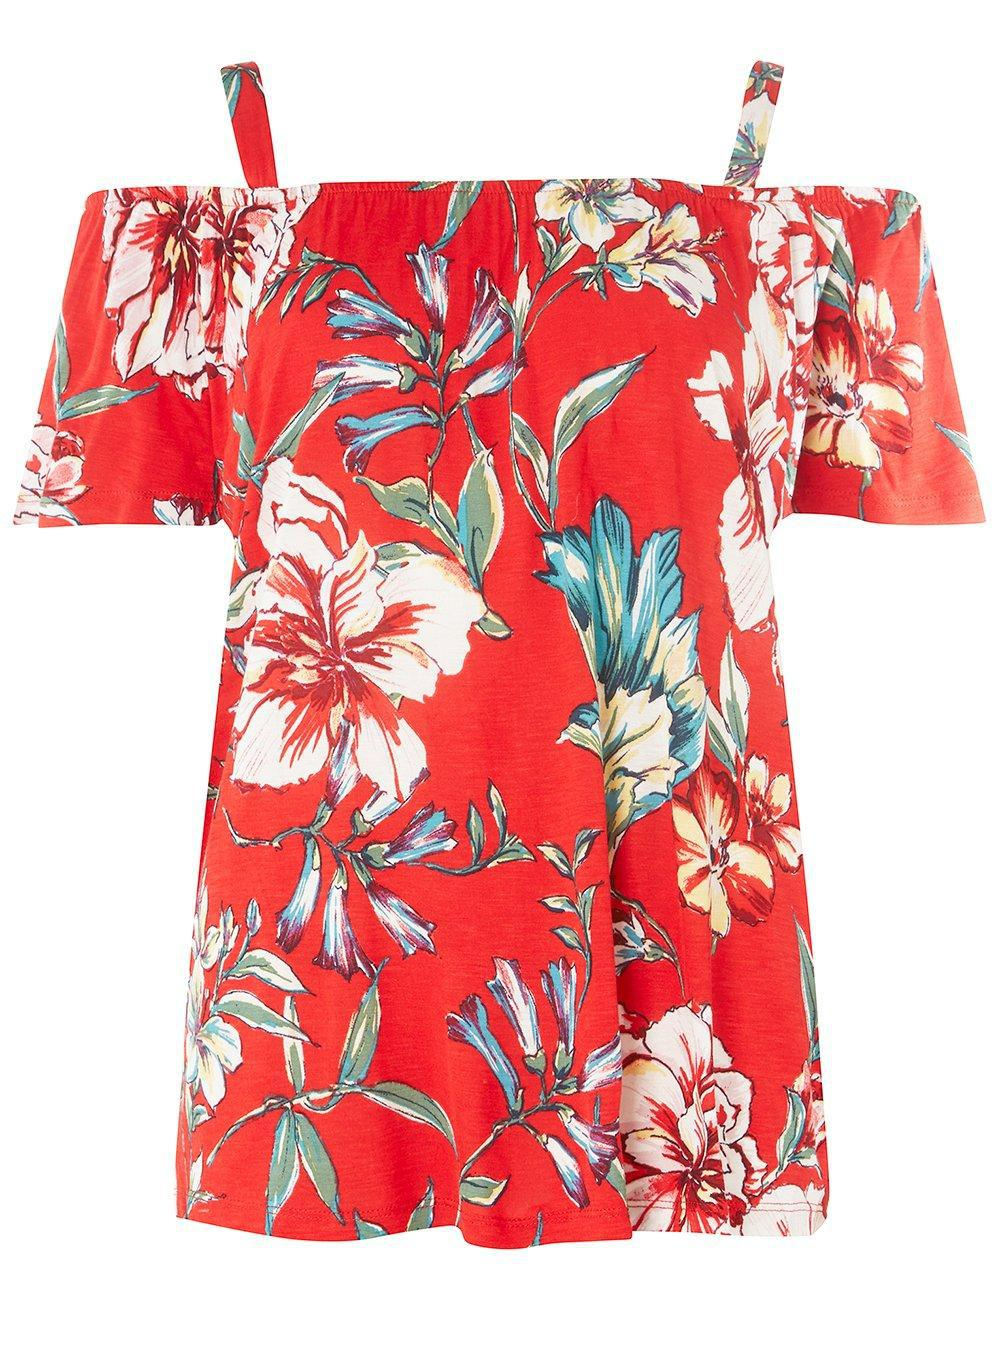 afab70ad42ff68 Lyst - Dorothy Perkins Tall Red Floral Cold Shoulder Top in Red